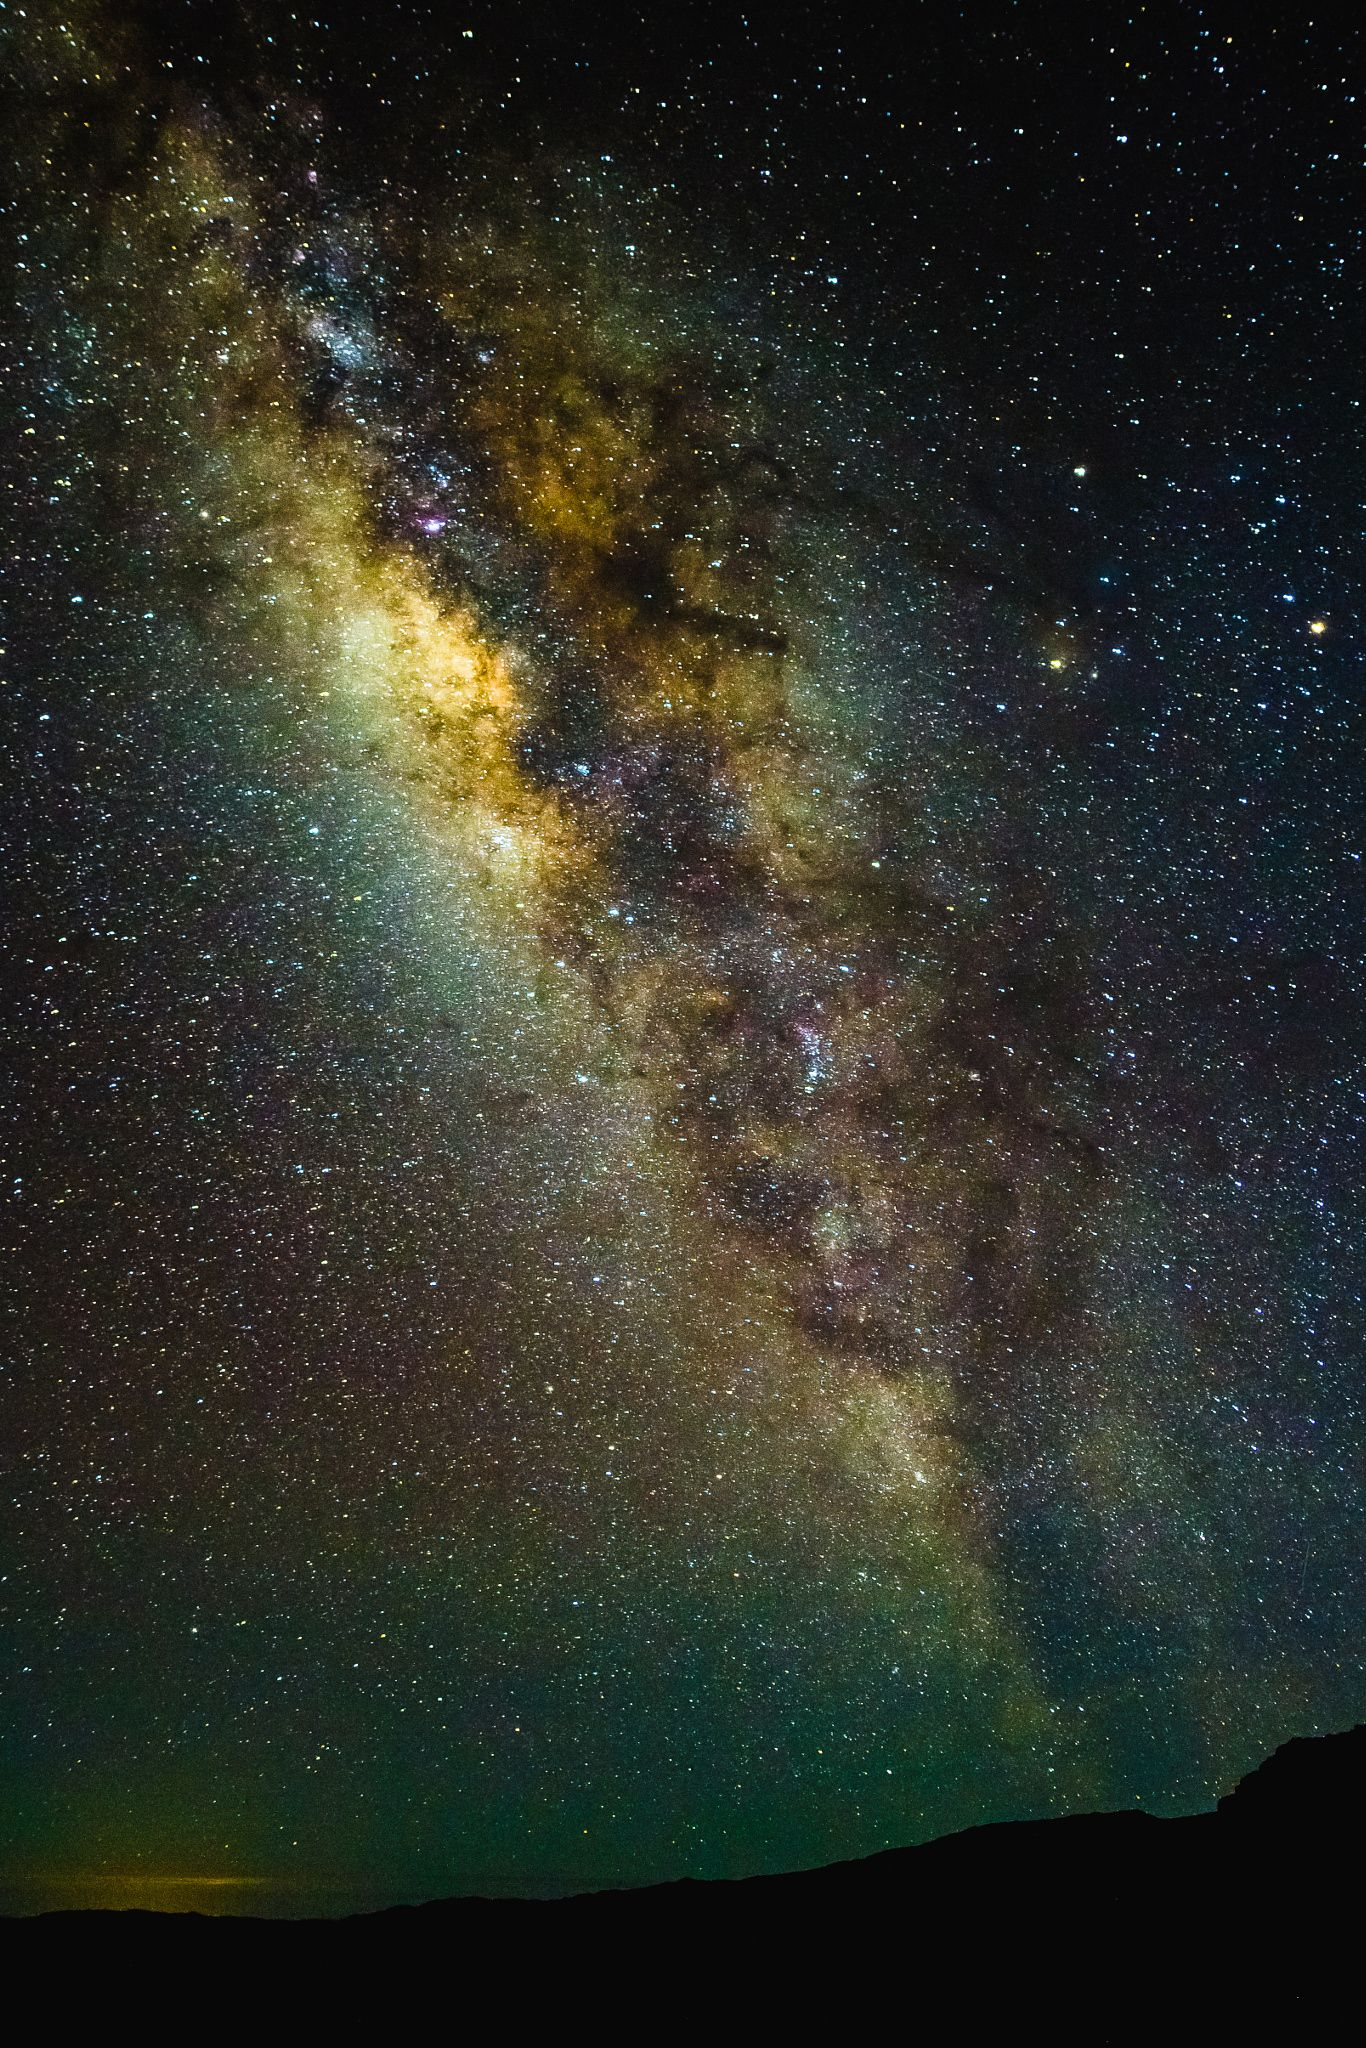 Milky Way Hawaii 7.8.16 #stars colors dark landscapes hawaii nigth milky way maui galaxy haleakala astronimy